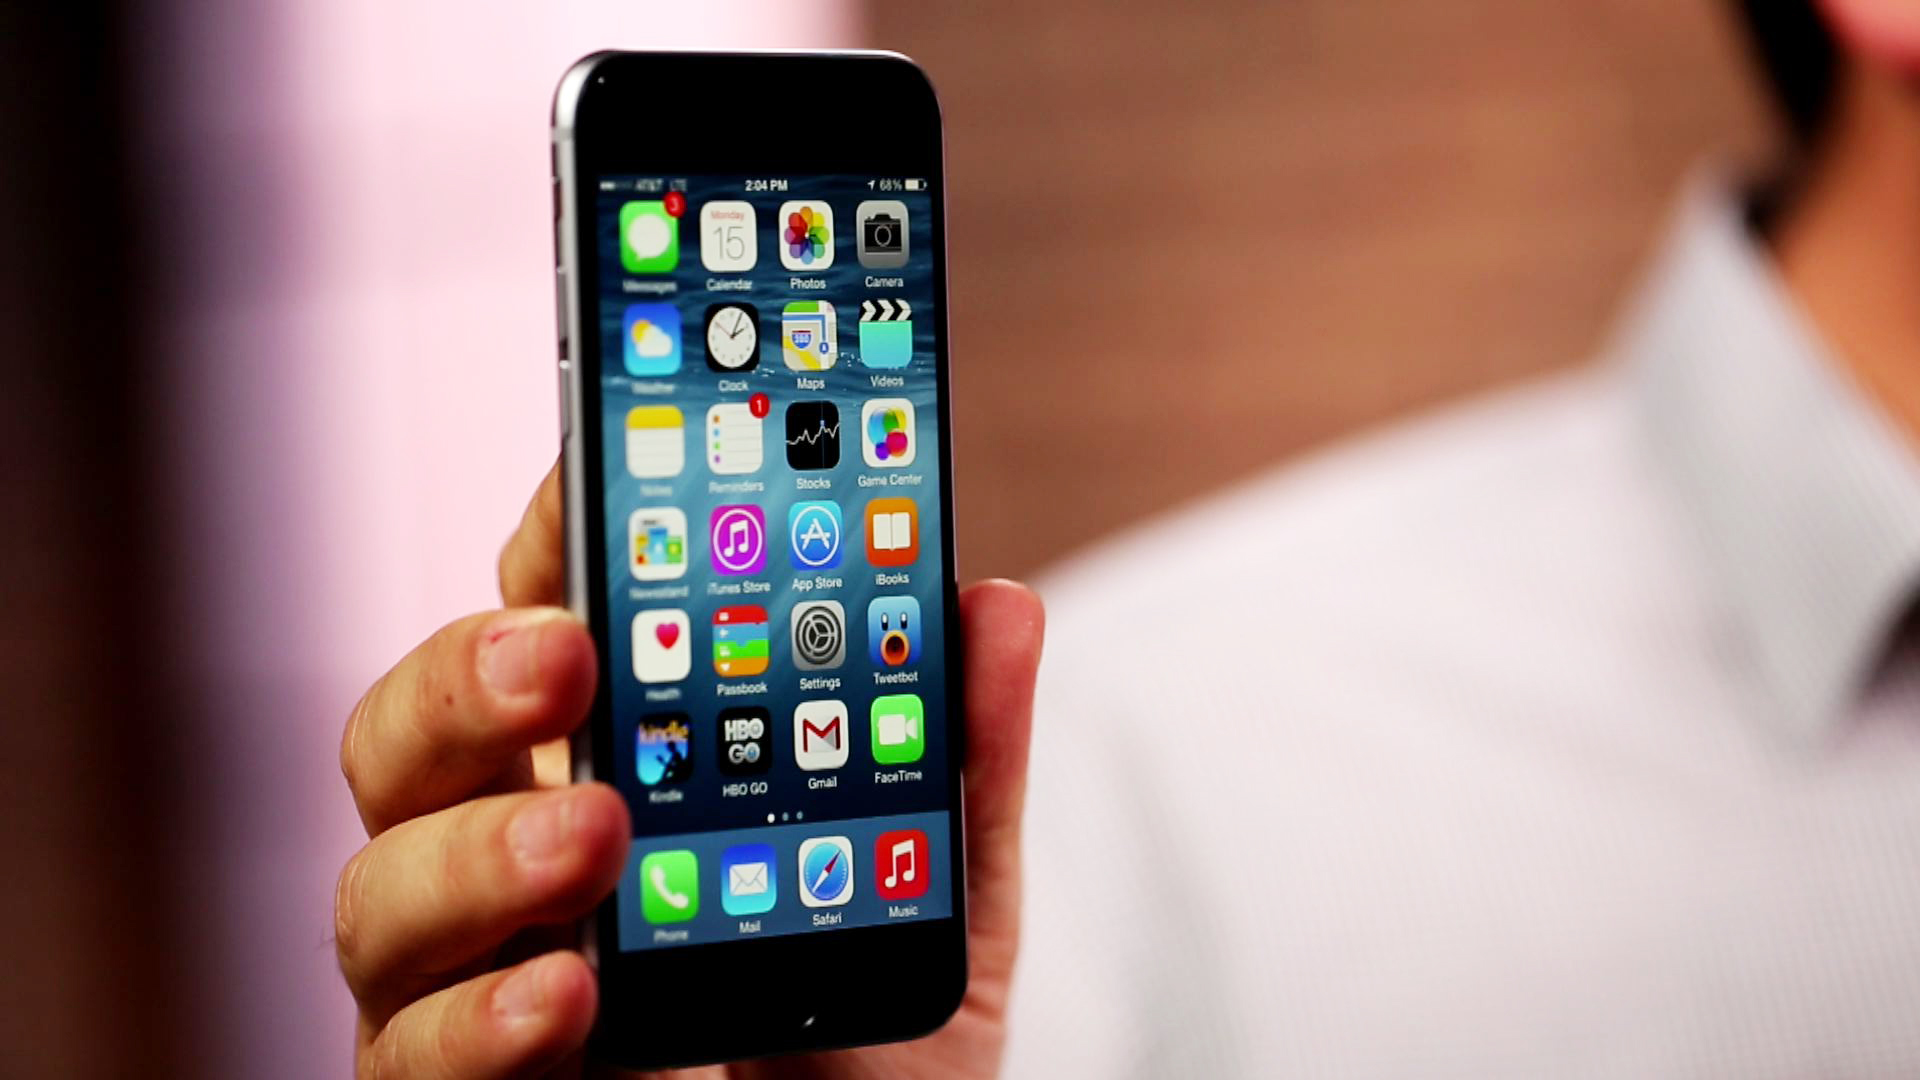 Video: iPhone 6, reviewed and up close